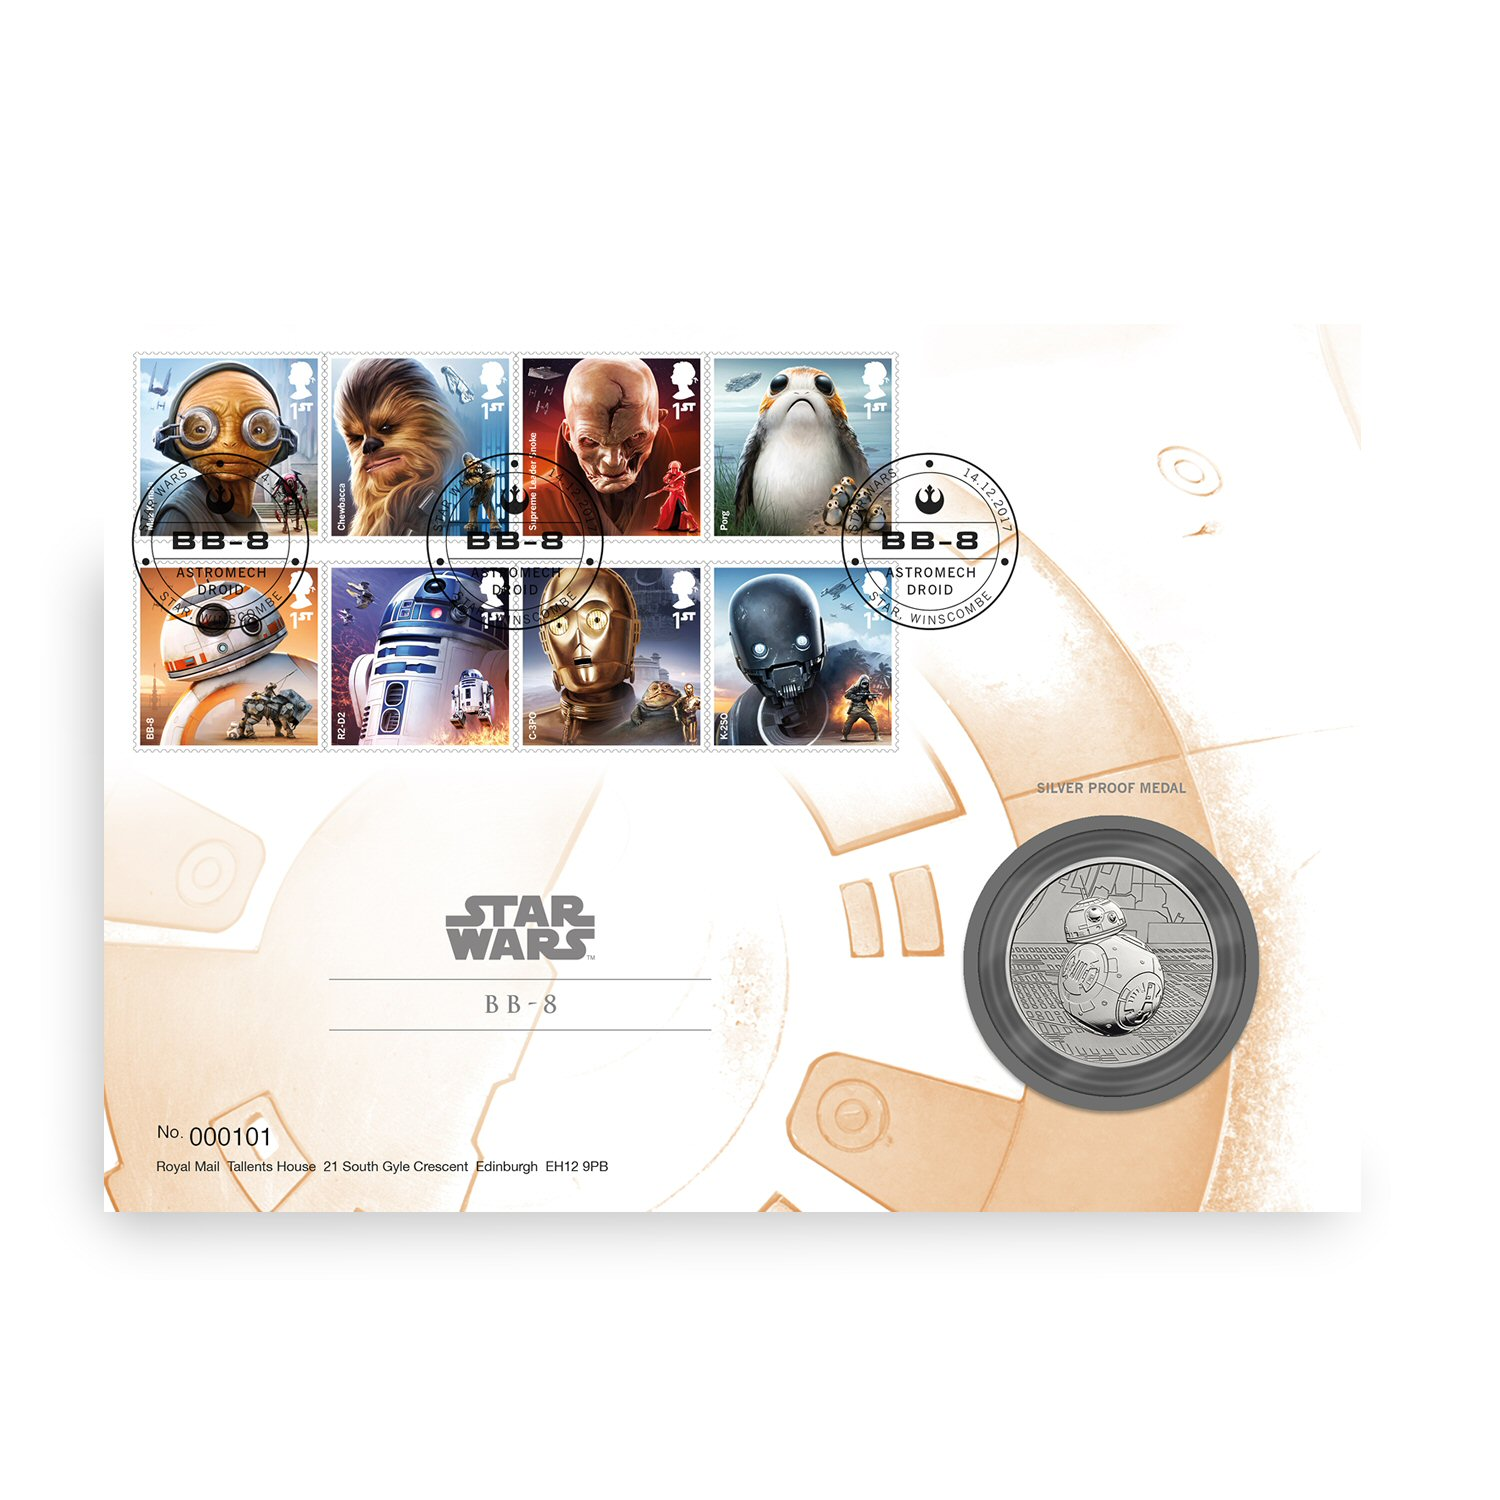 Star Wars BB8 Silver Proof Medal Cover